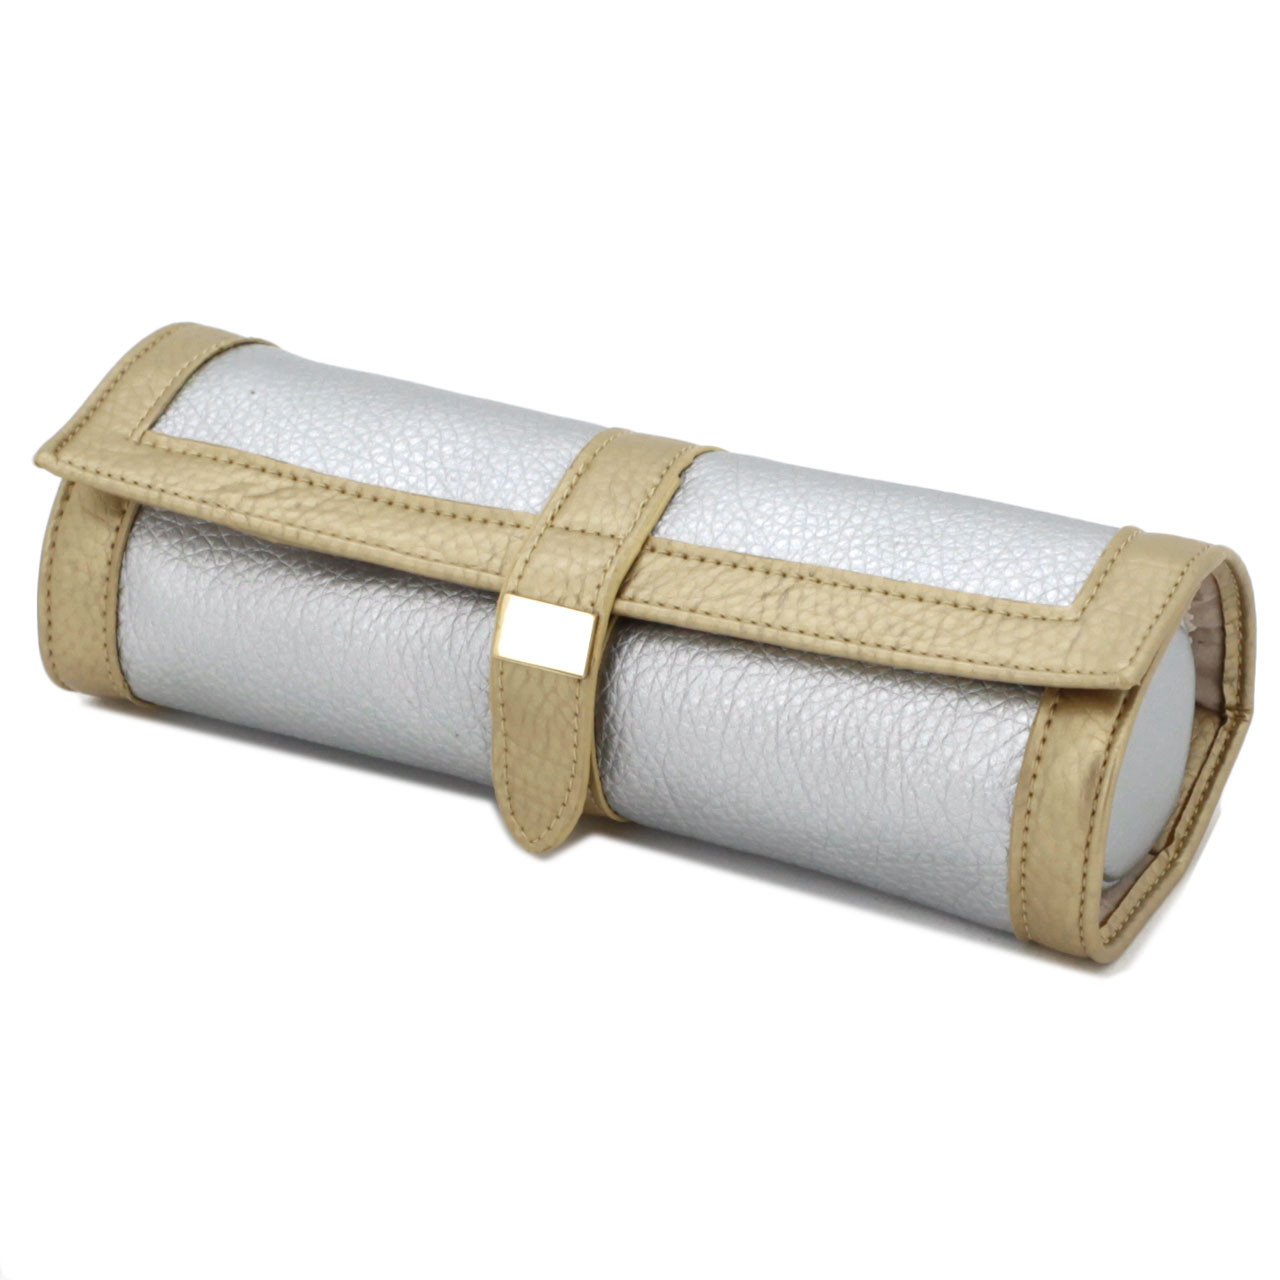 Gold Leather Jewelry Roll Up Travel Case TechSwiss